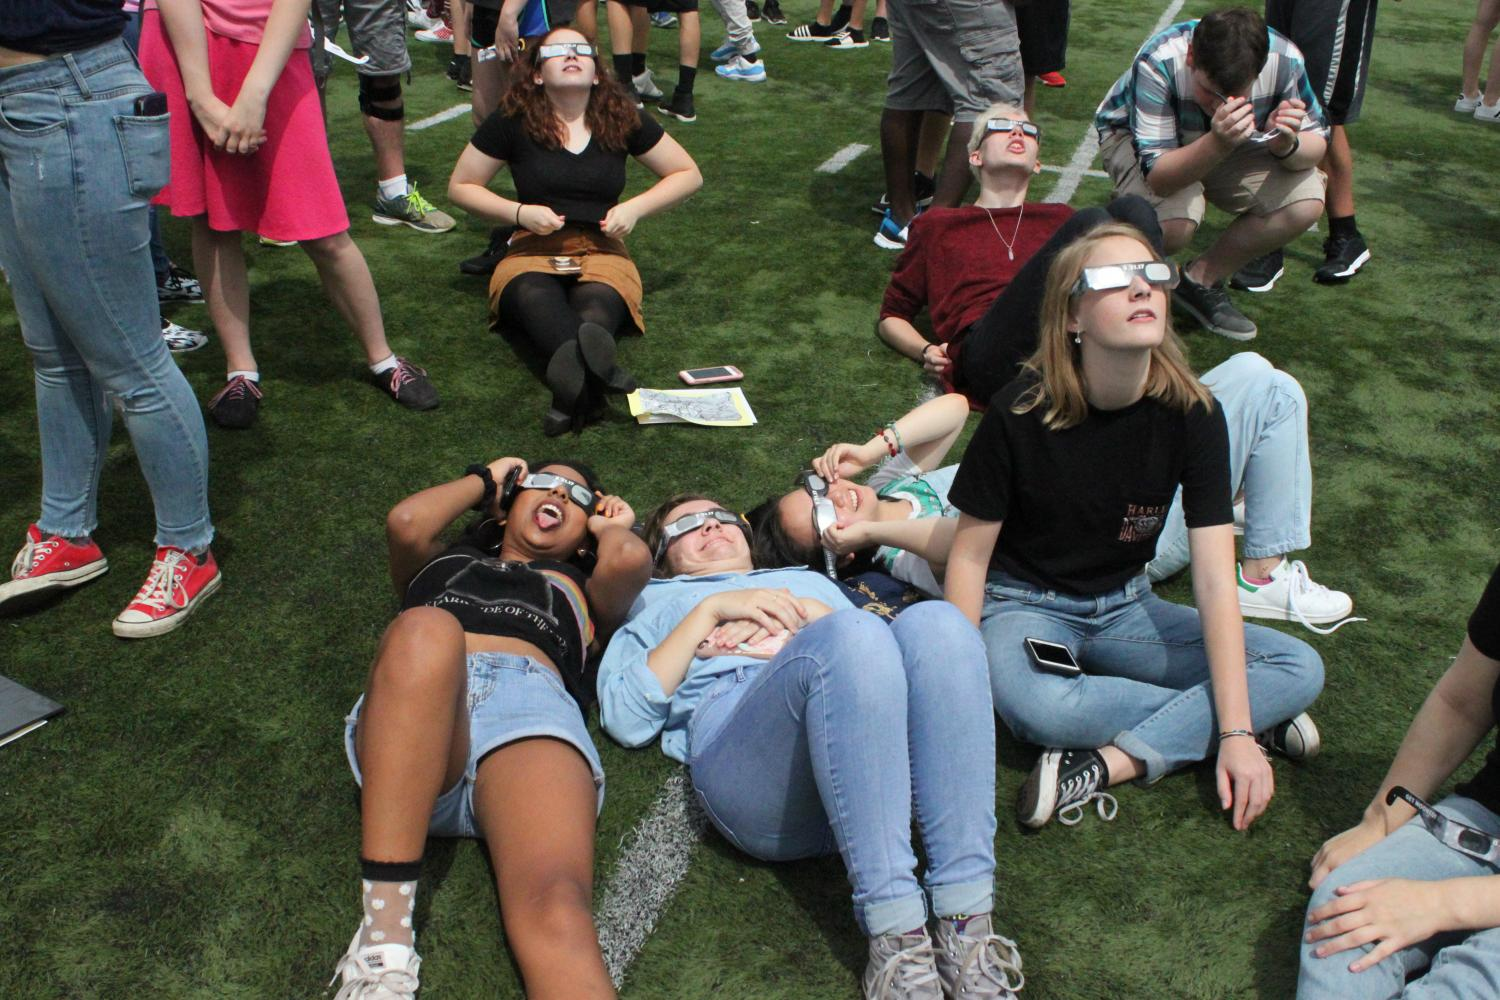 Central+students+gather+on+the+football+field+to+view+the+eclipse+using+the+special+eclipse+glasses+purchased+for+them+by+Home+and+School